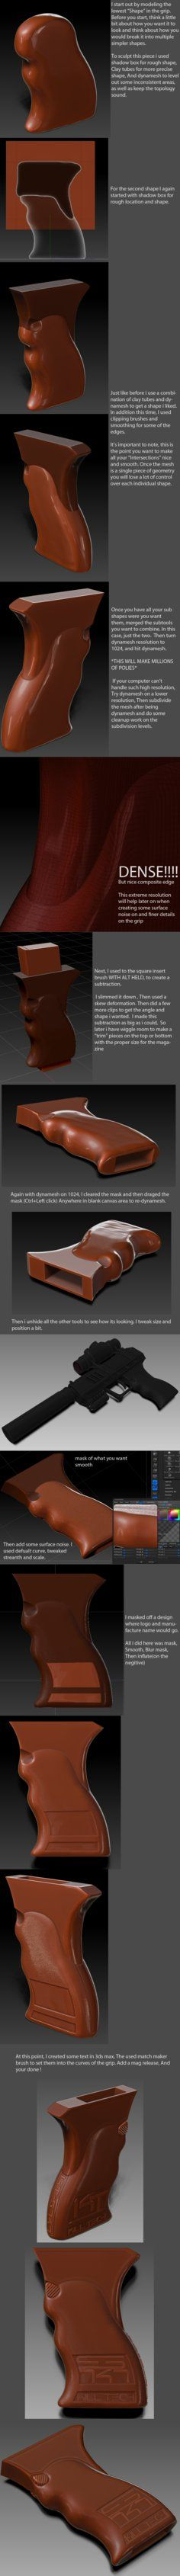 Zbrush Pistol grip Tutorial by ~s620ex1 on deviantART